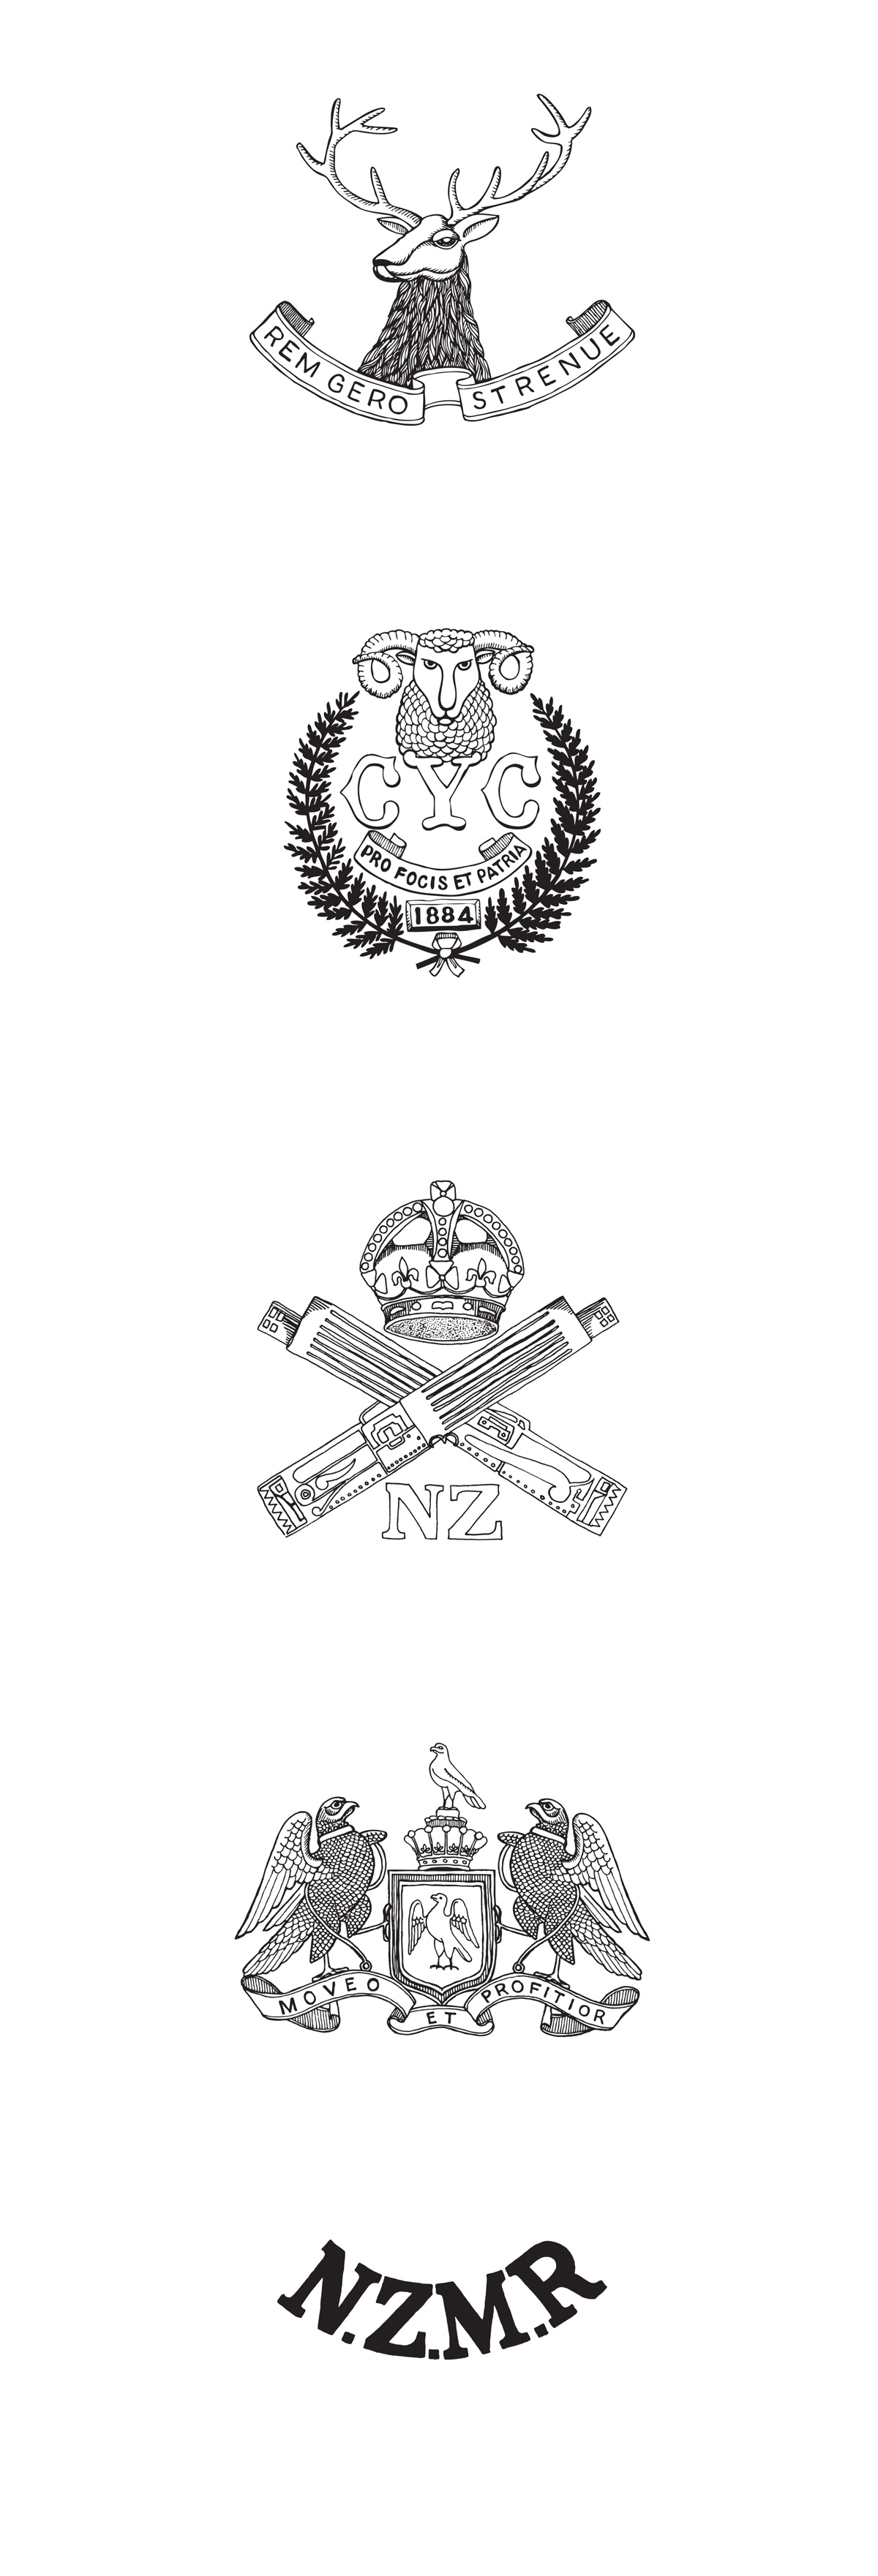 Mounted Rifles badges illustration